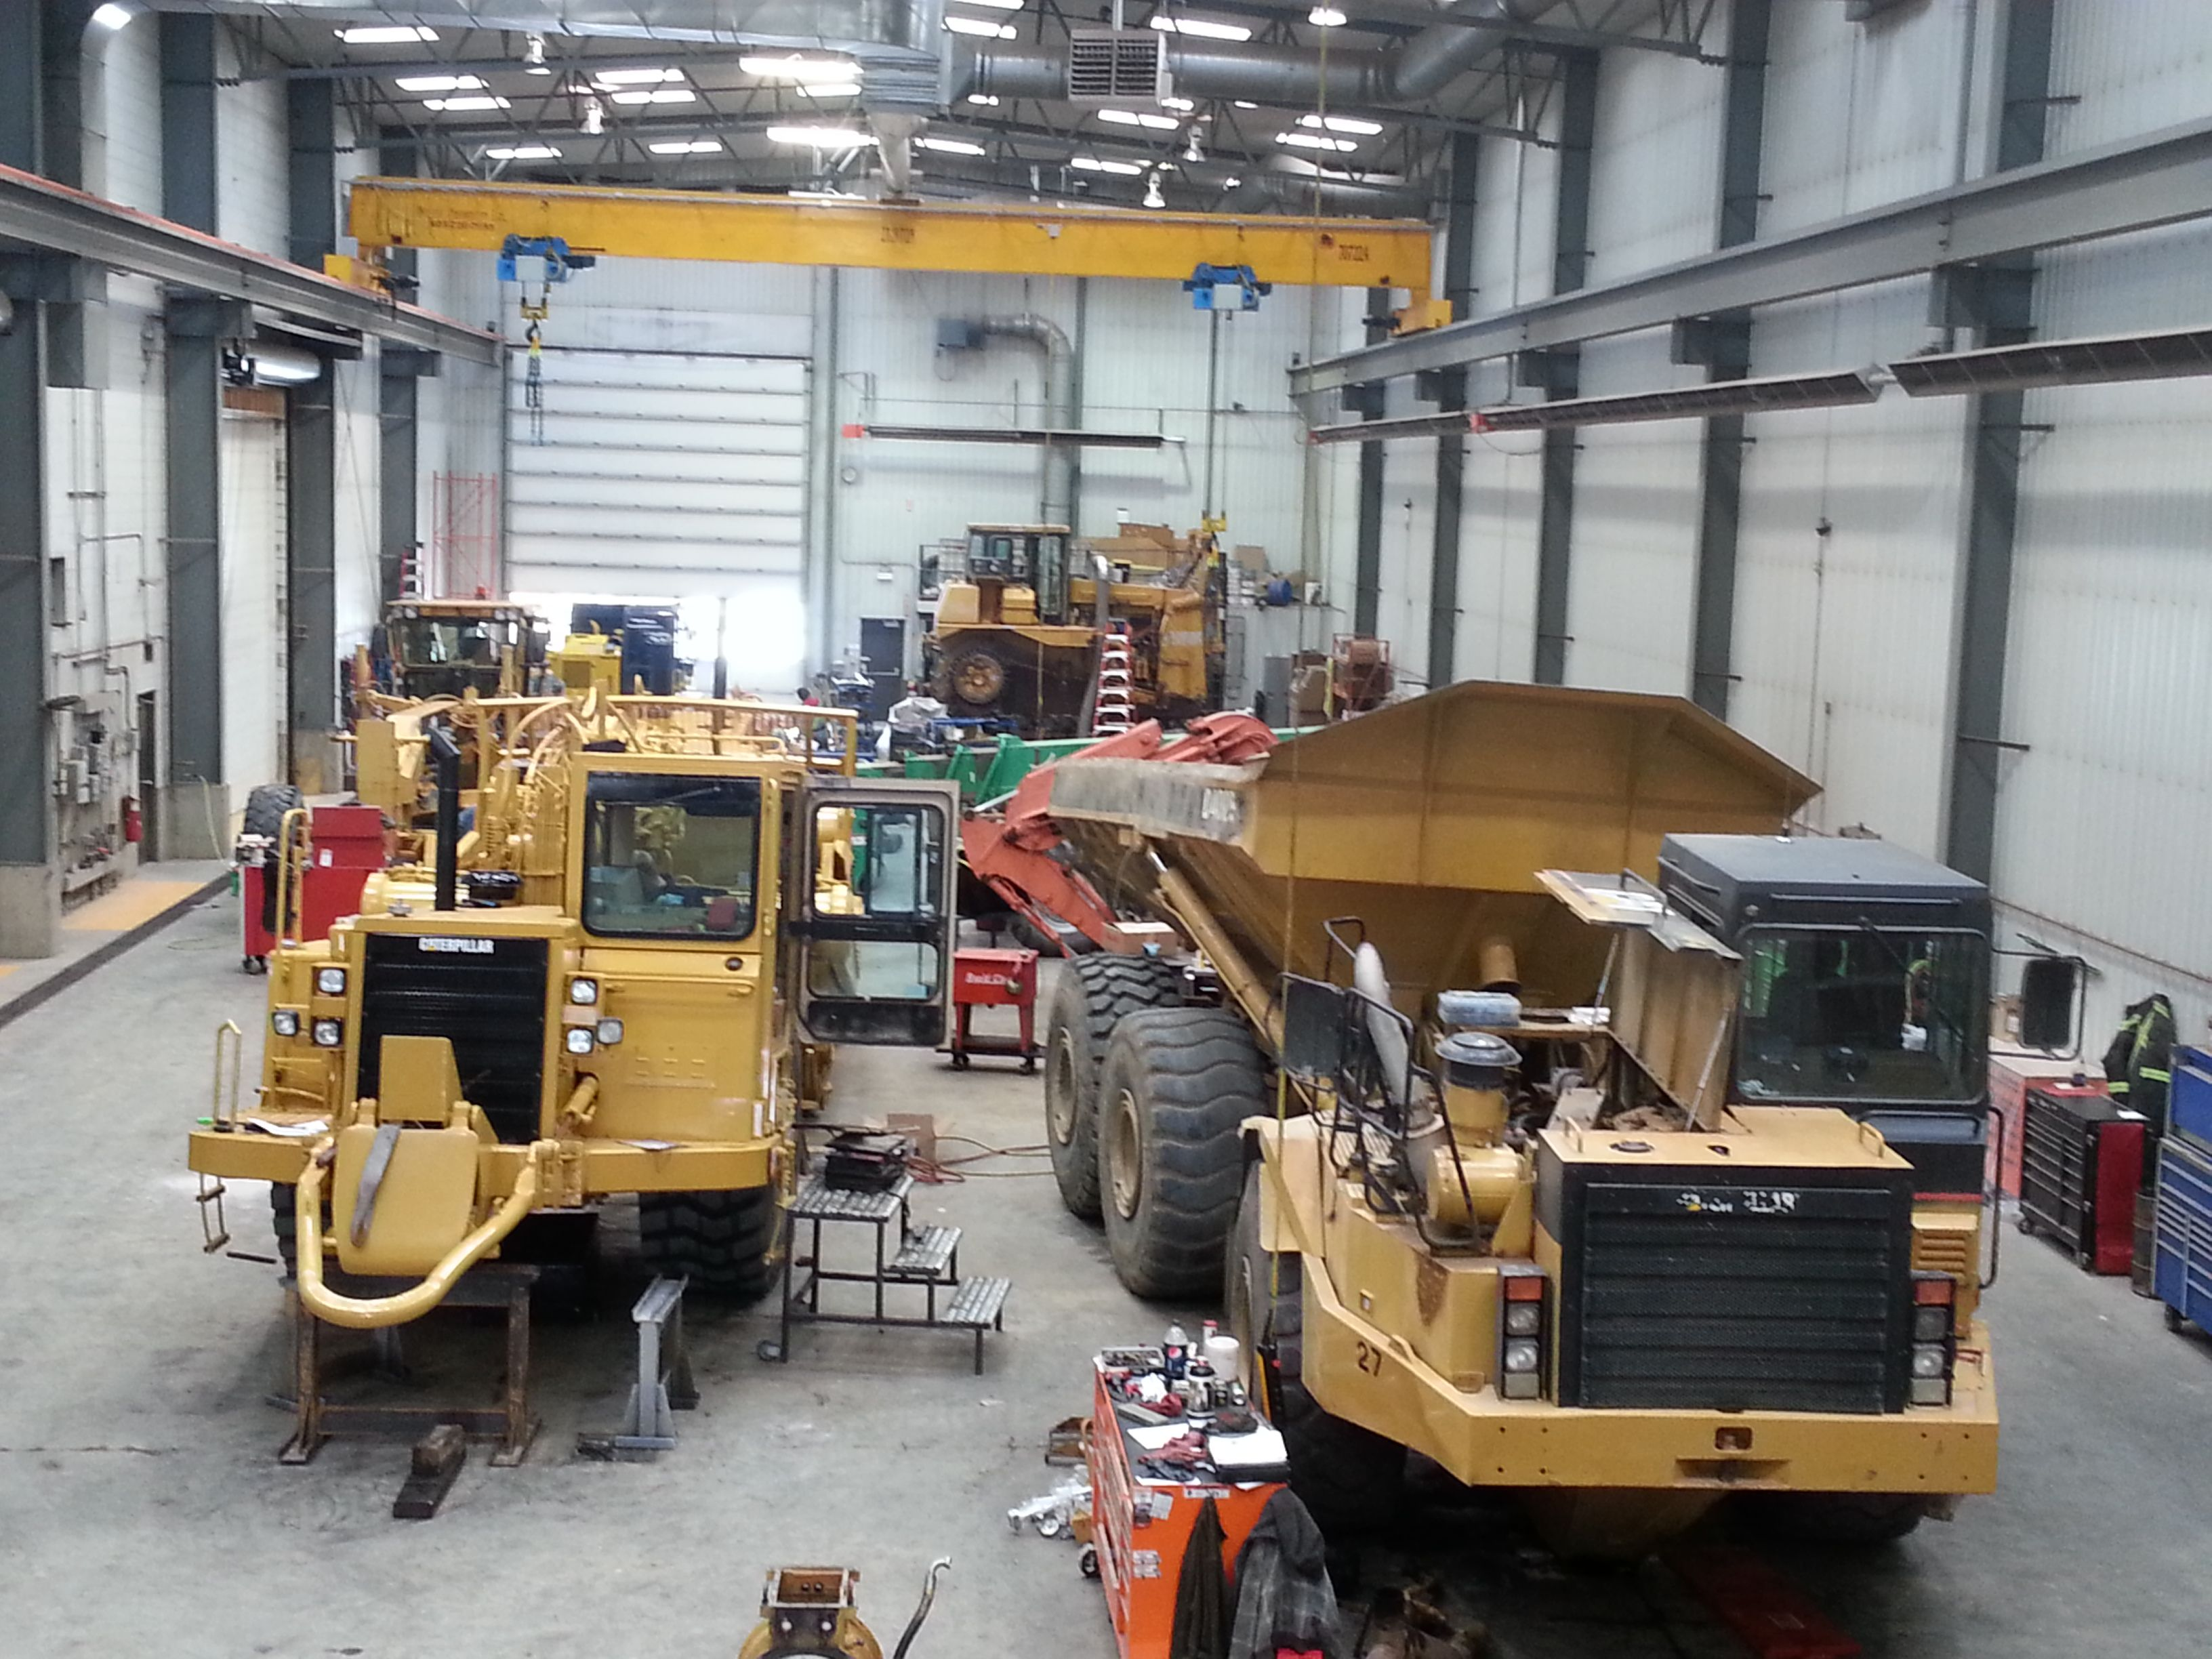 Some heavy equipment in the shop for repairs. Heavy